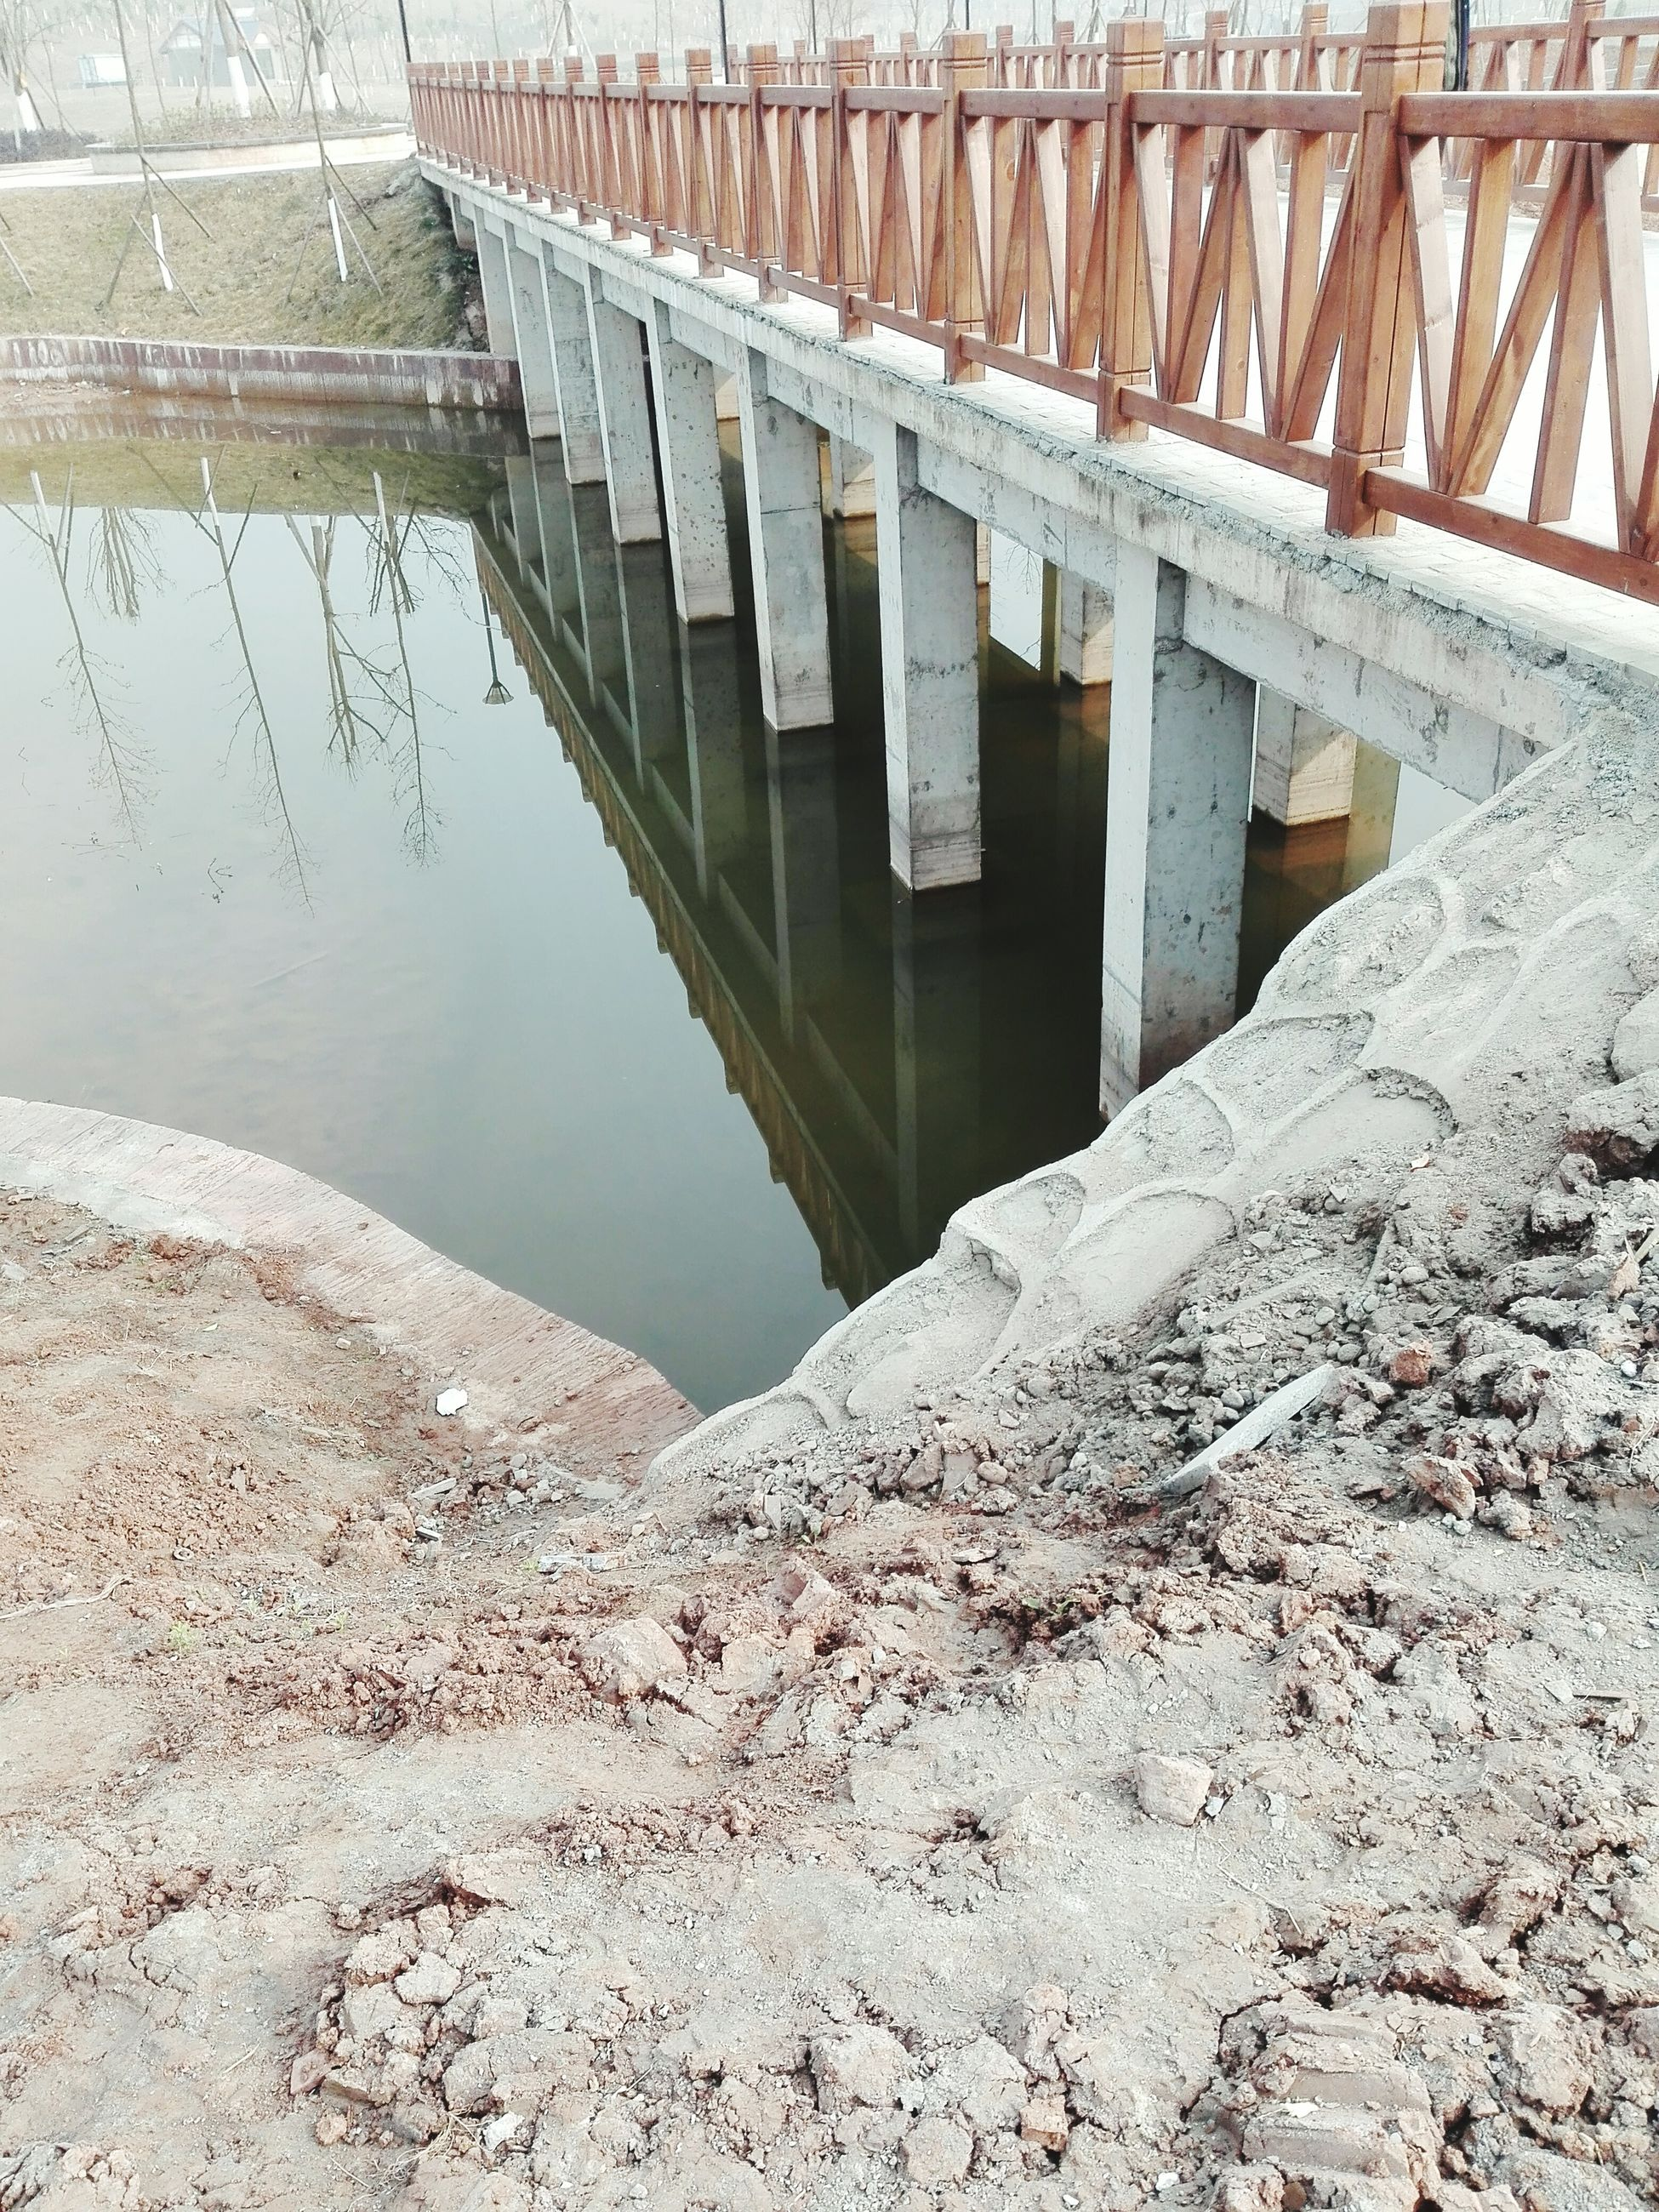 water, outdoors, bridge - man made structure, day, no people, nature, hydroelectric power